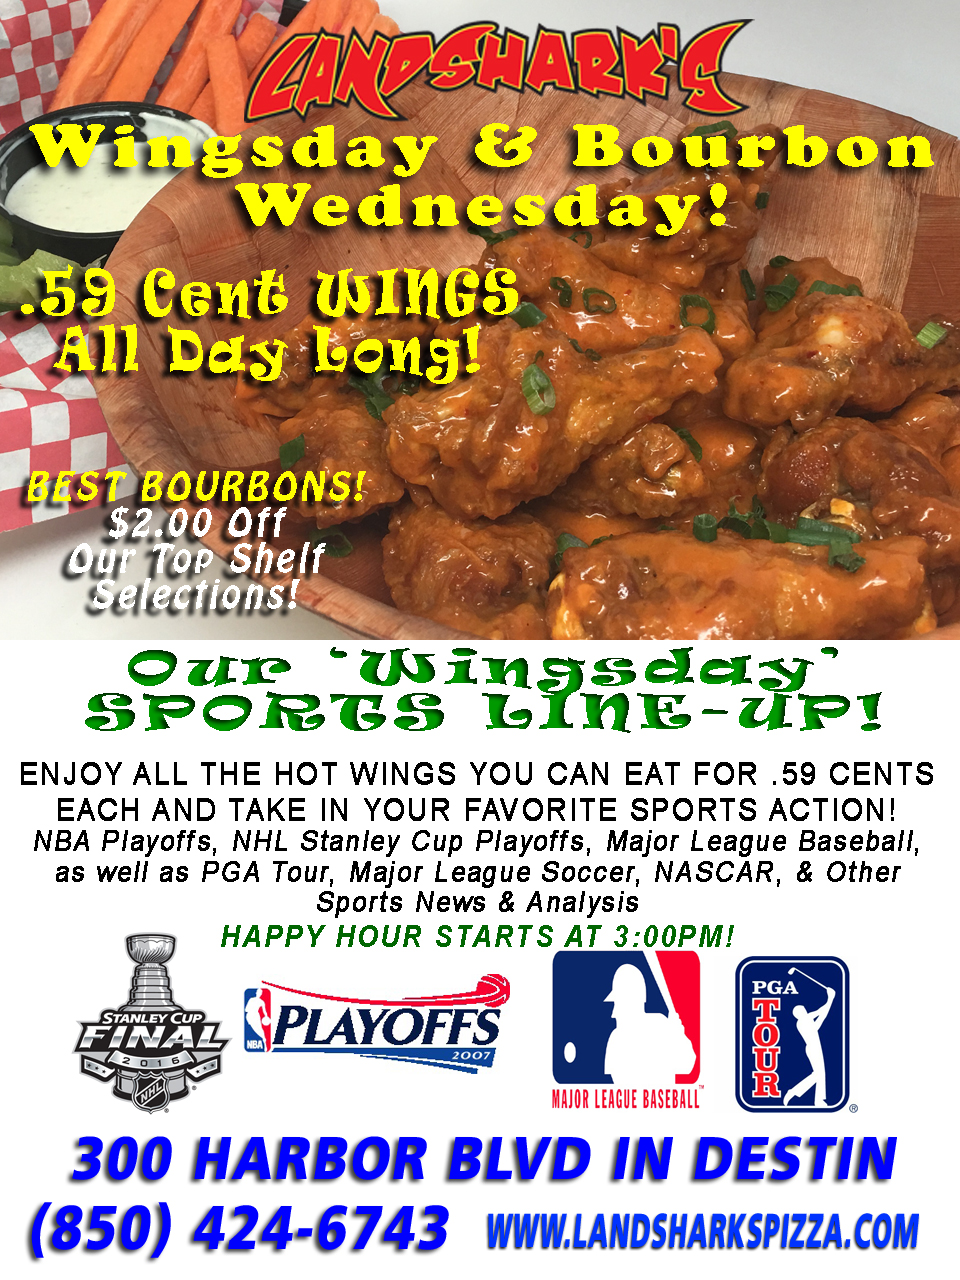 Best Buffalo Hot Wings in Destin FL Landsharks Wingsday 04-20-16a